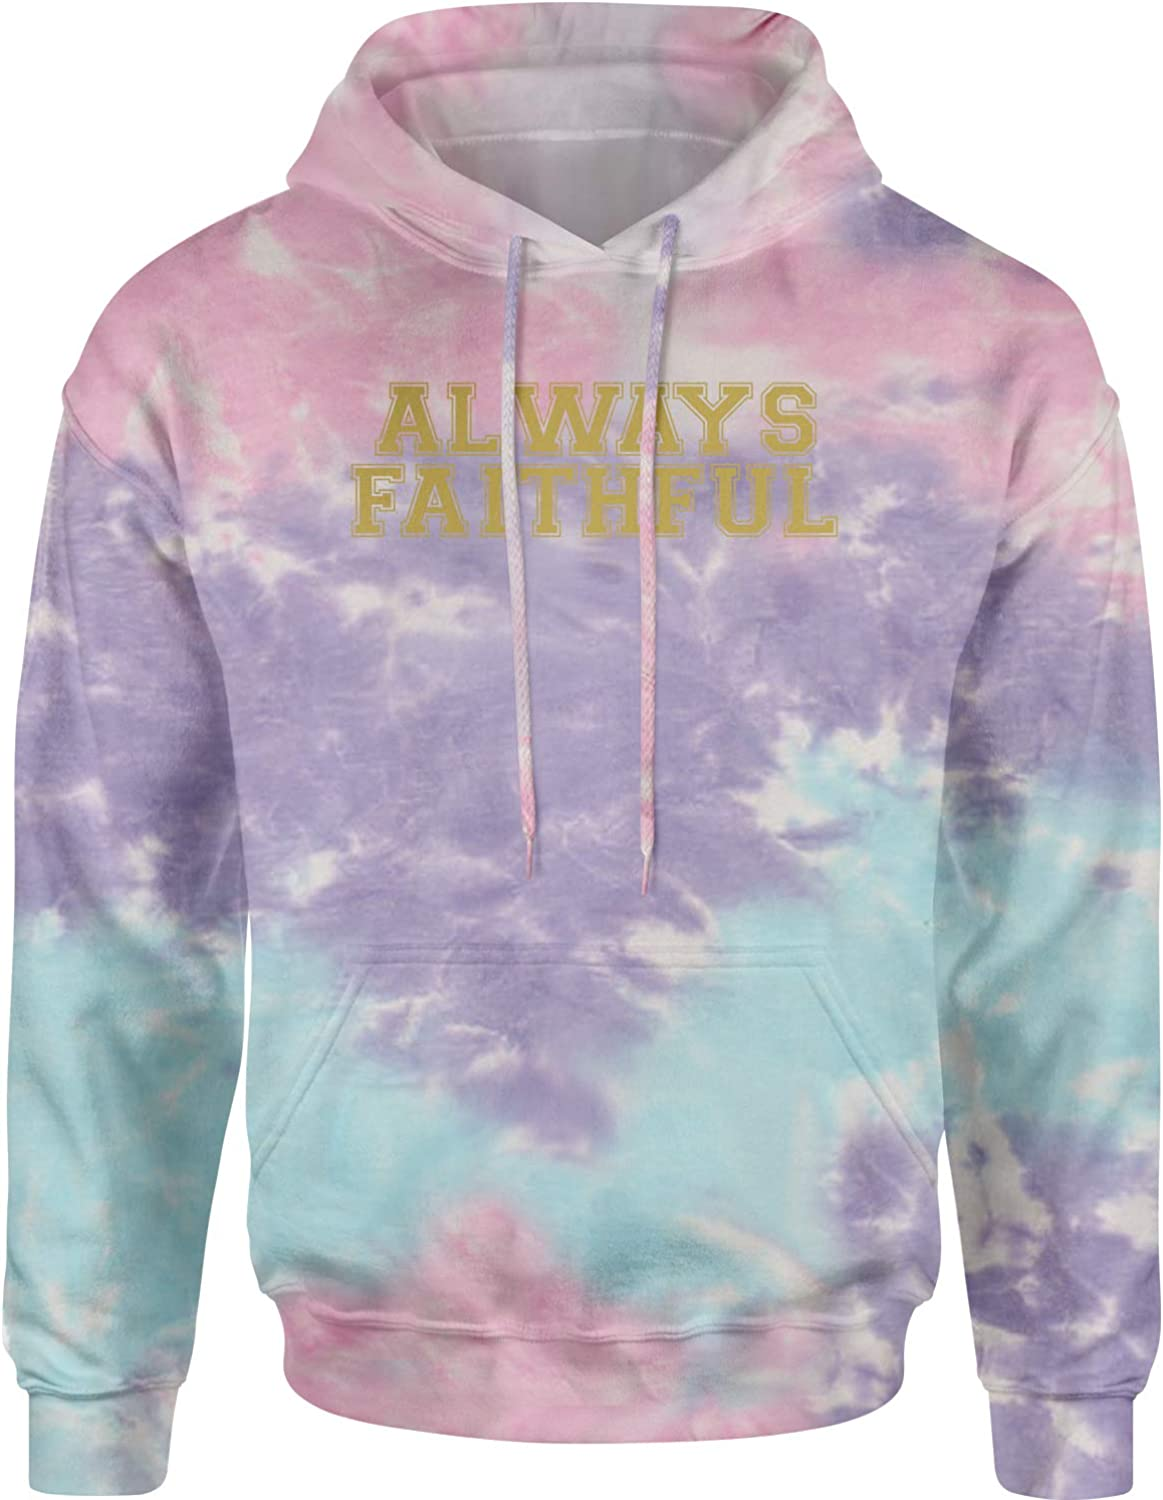 Hoodie Cheap All items free shipping SALE Start Always Faithful Adult Cotton X-Large Candy